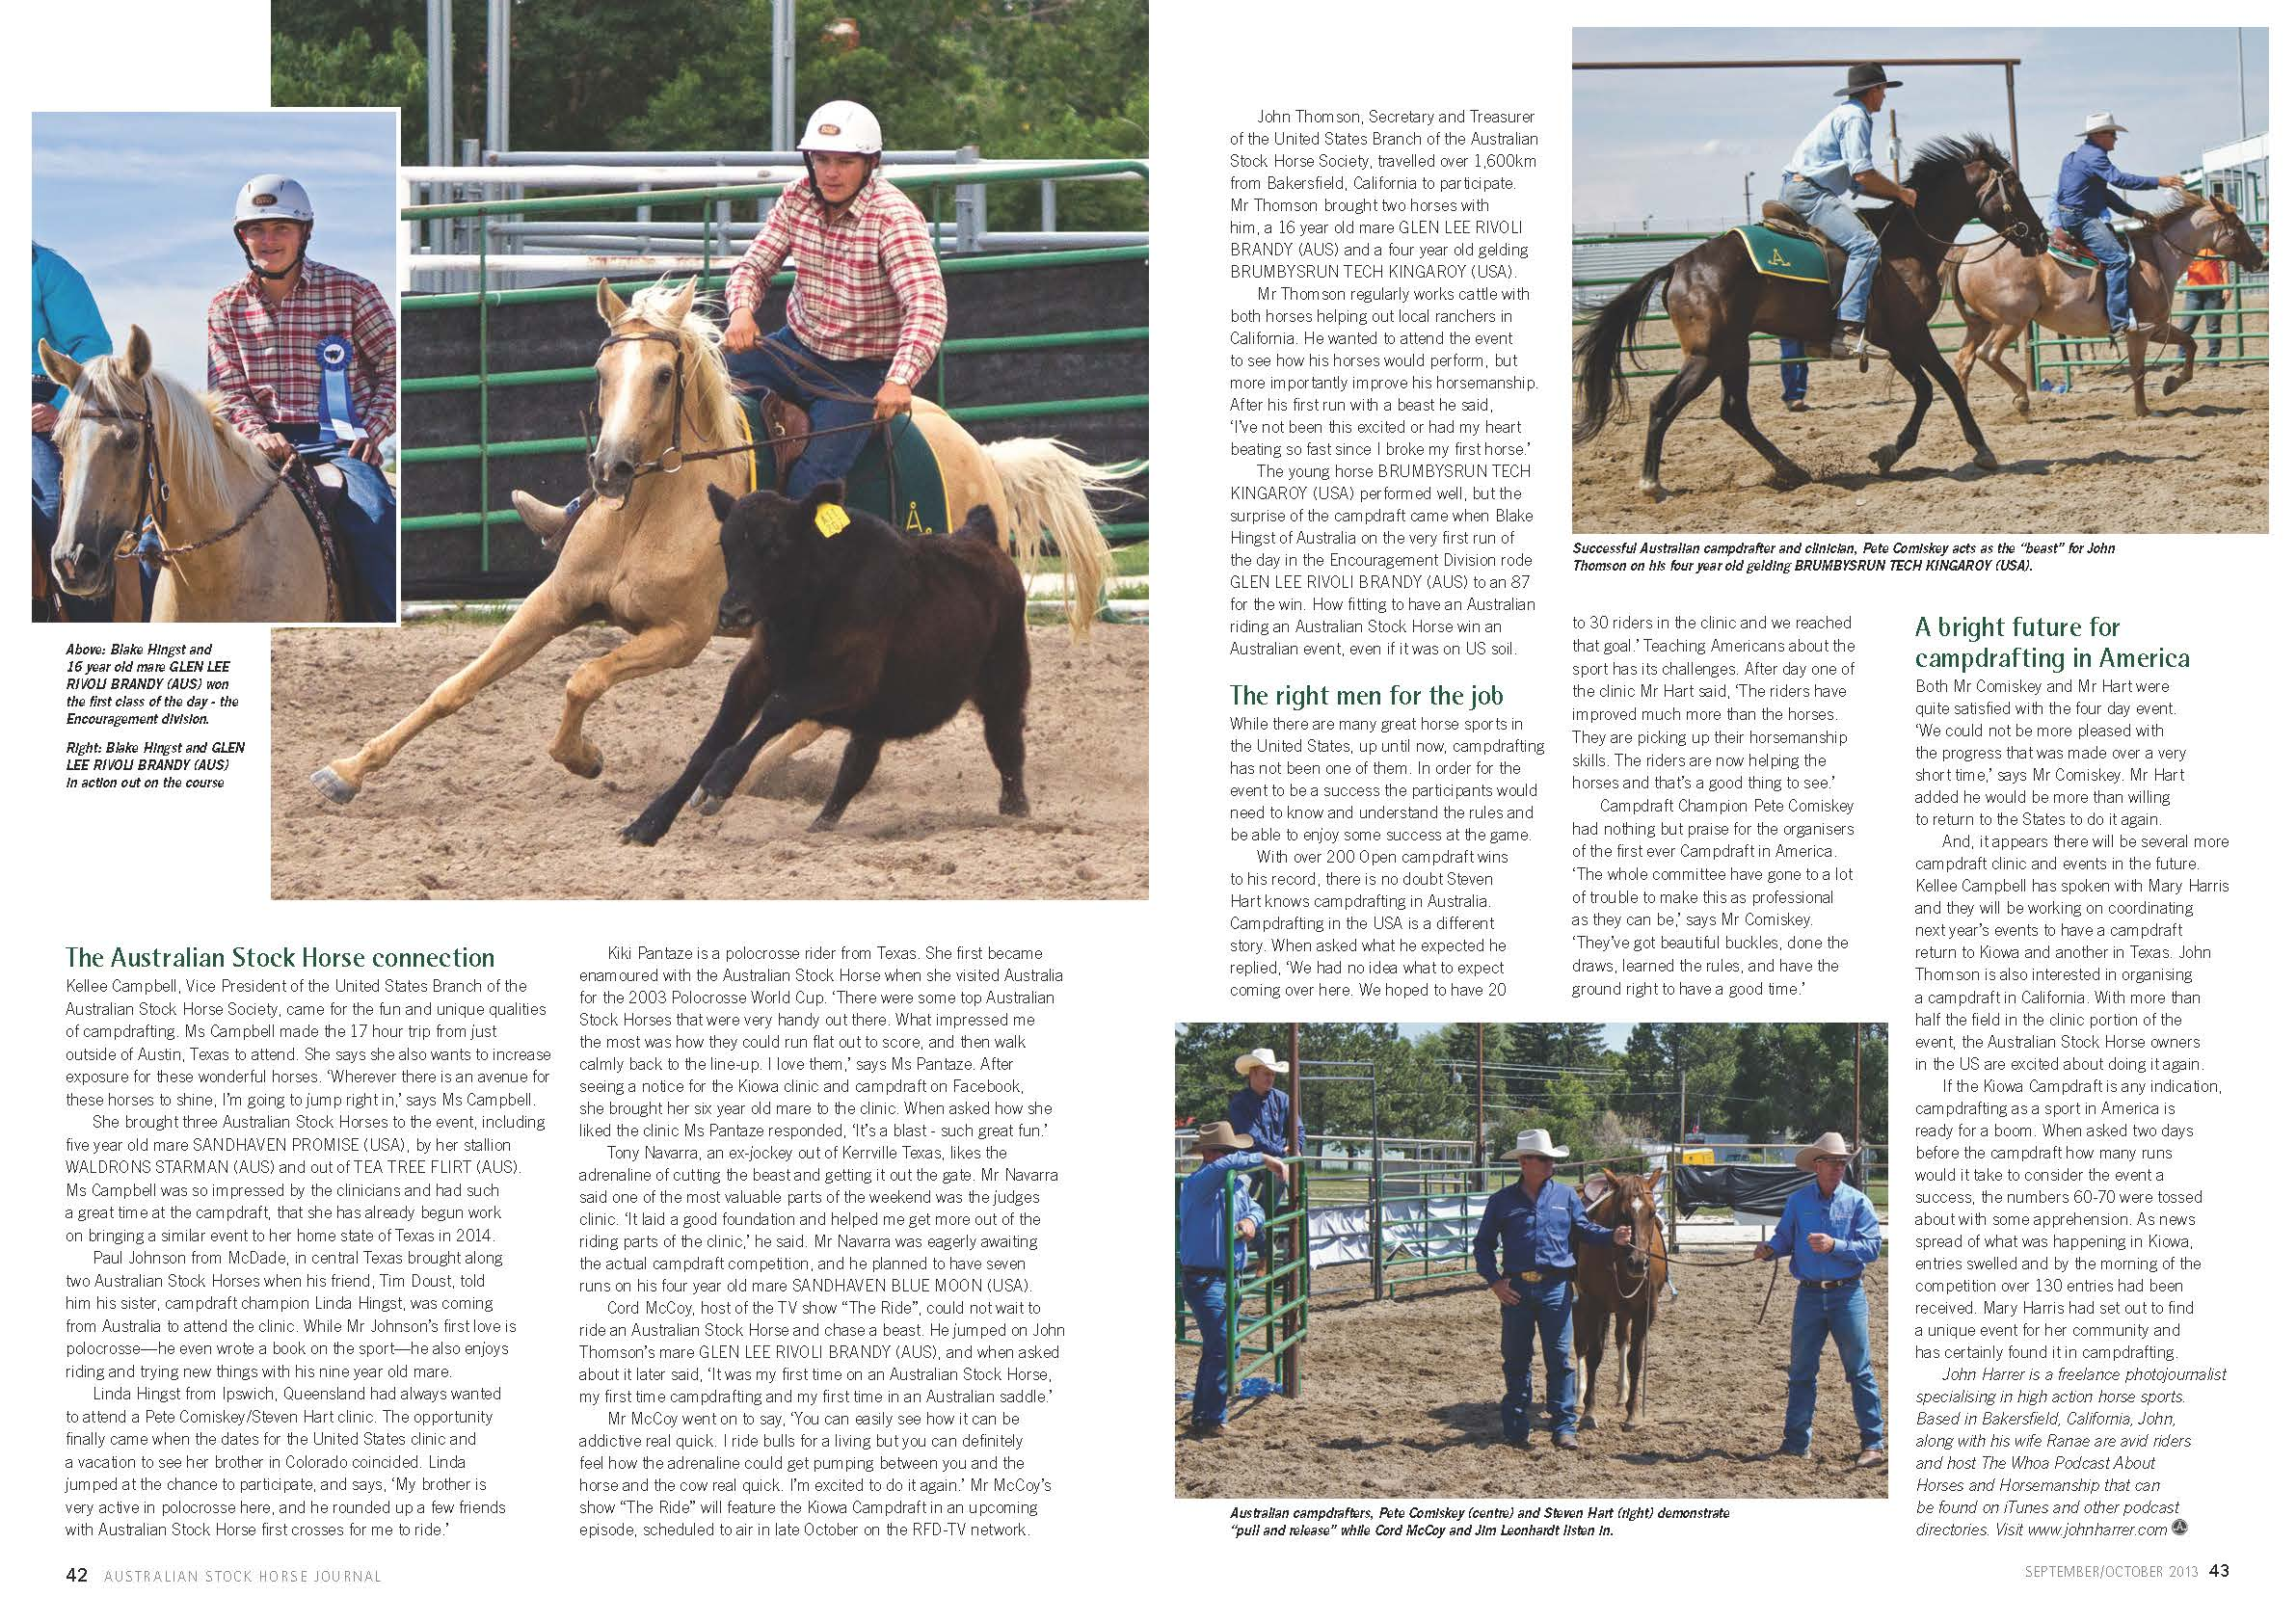 Australian Stock Horse Journal Pages 42-43